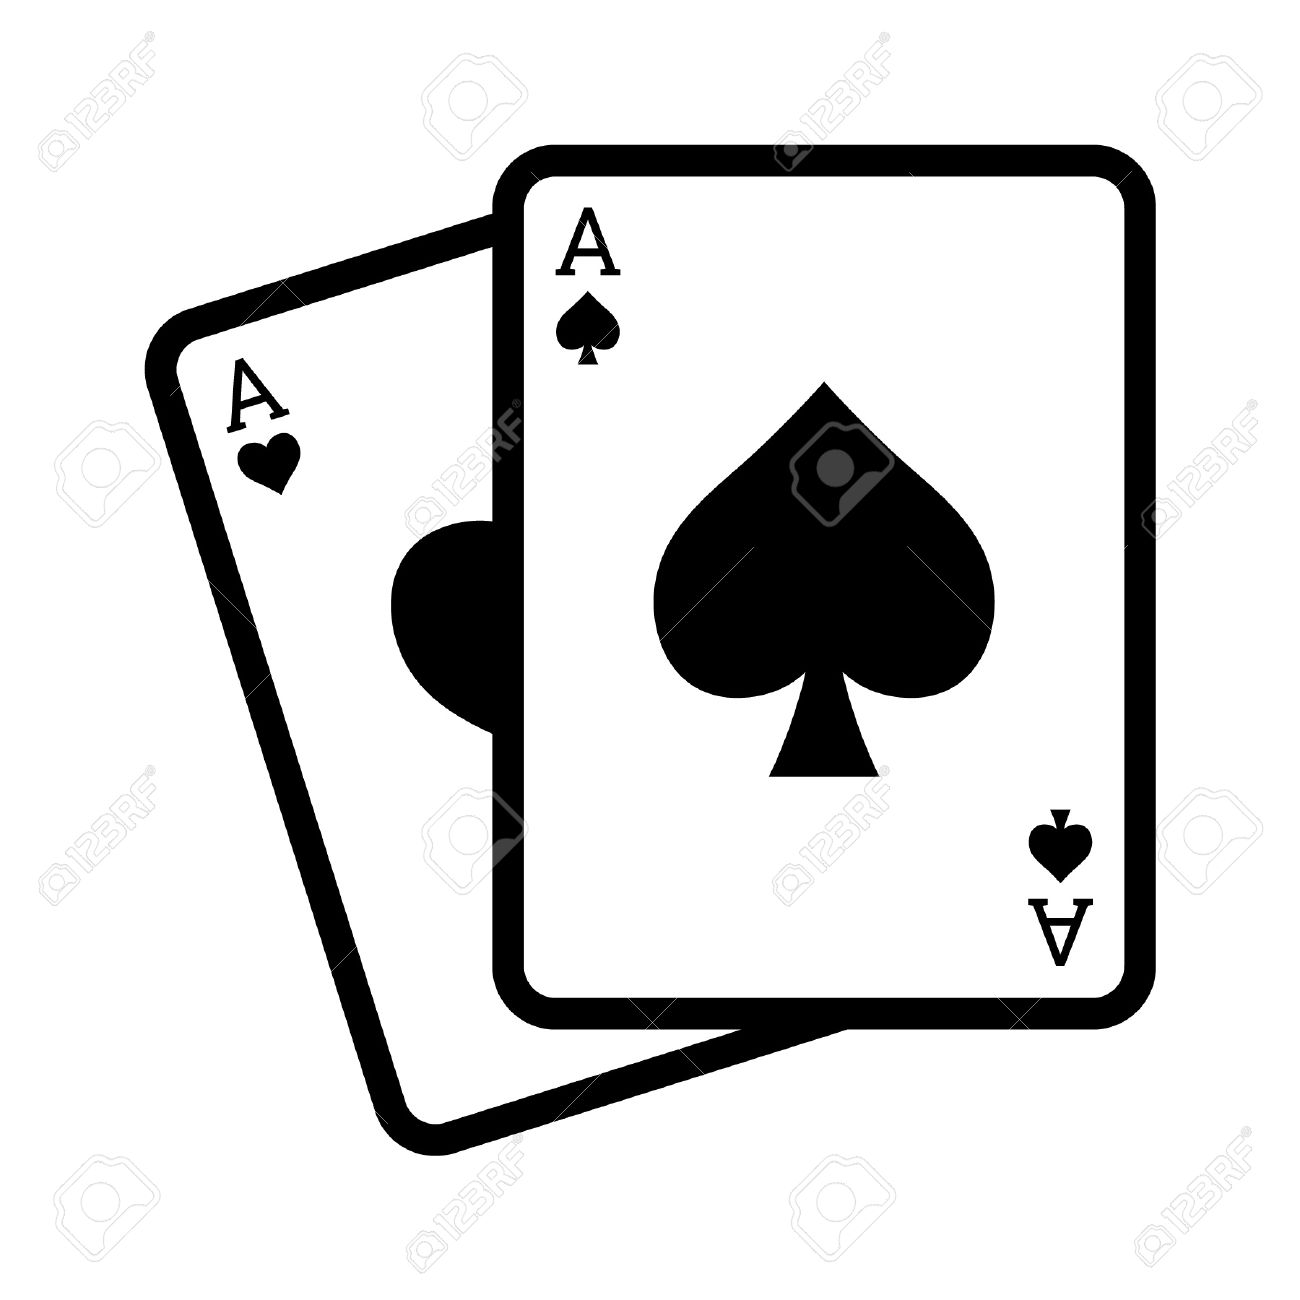 blackjack poker cards with aces line art icon royalty free cliparts rh 123rf com playing cards vector file playing cards vector simple